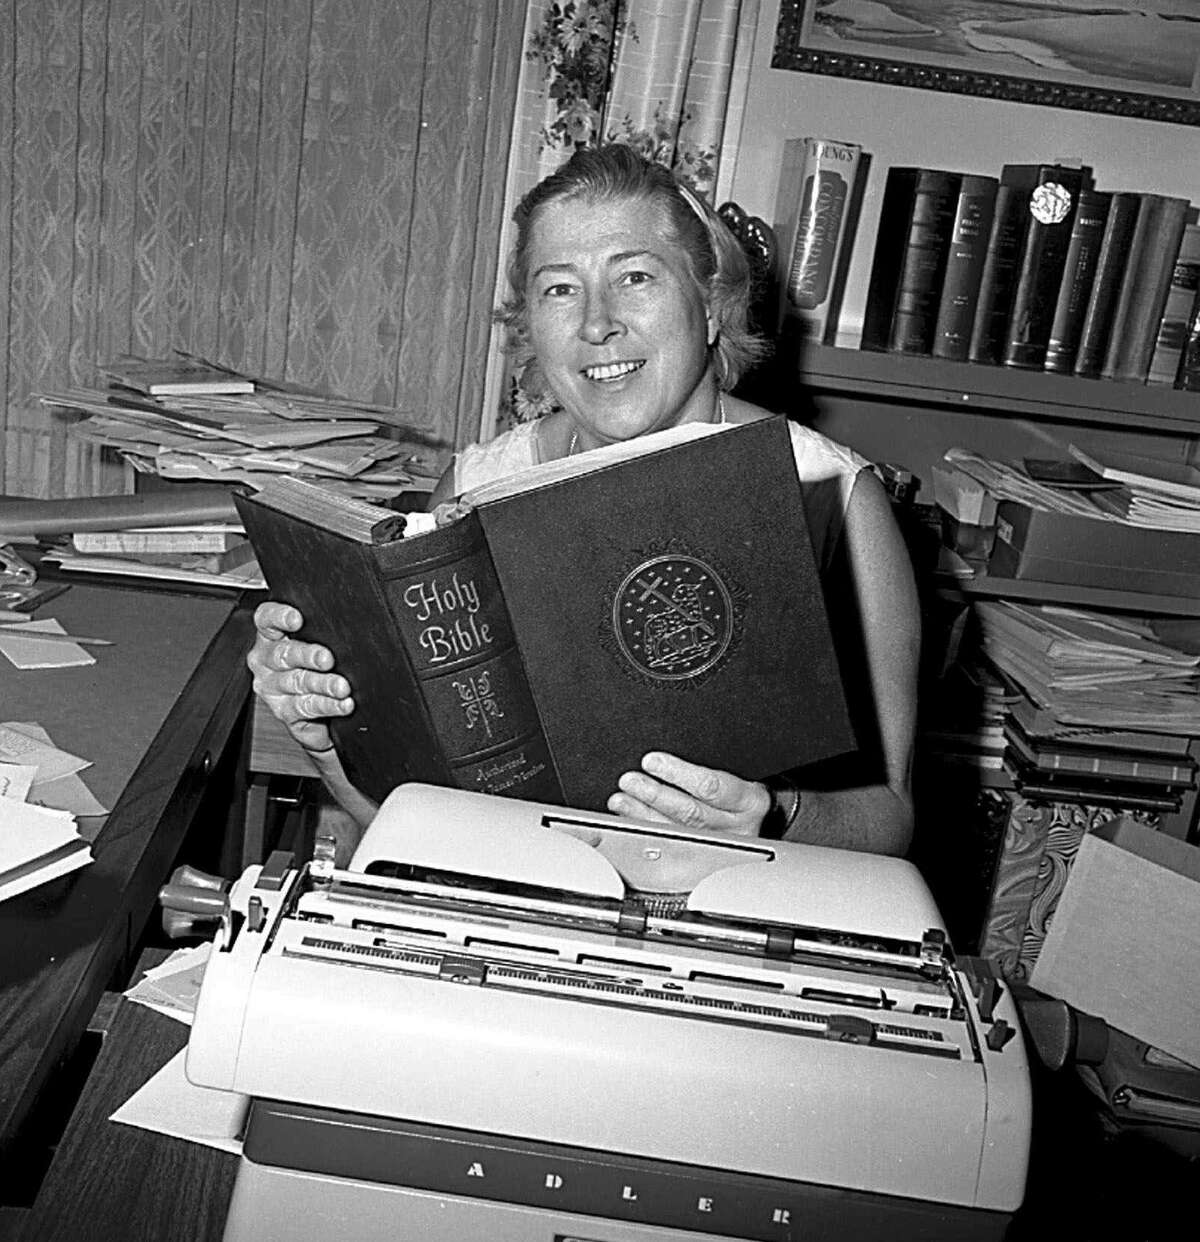 The real atheist leader Madalyn Murray O'Hair. She holds a copy of the Bible in her office in this Dec. 3, 1969 file photo.